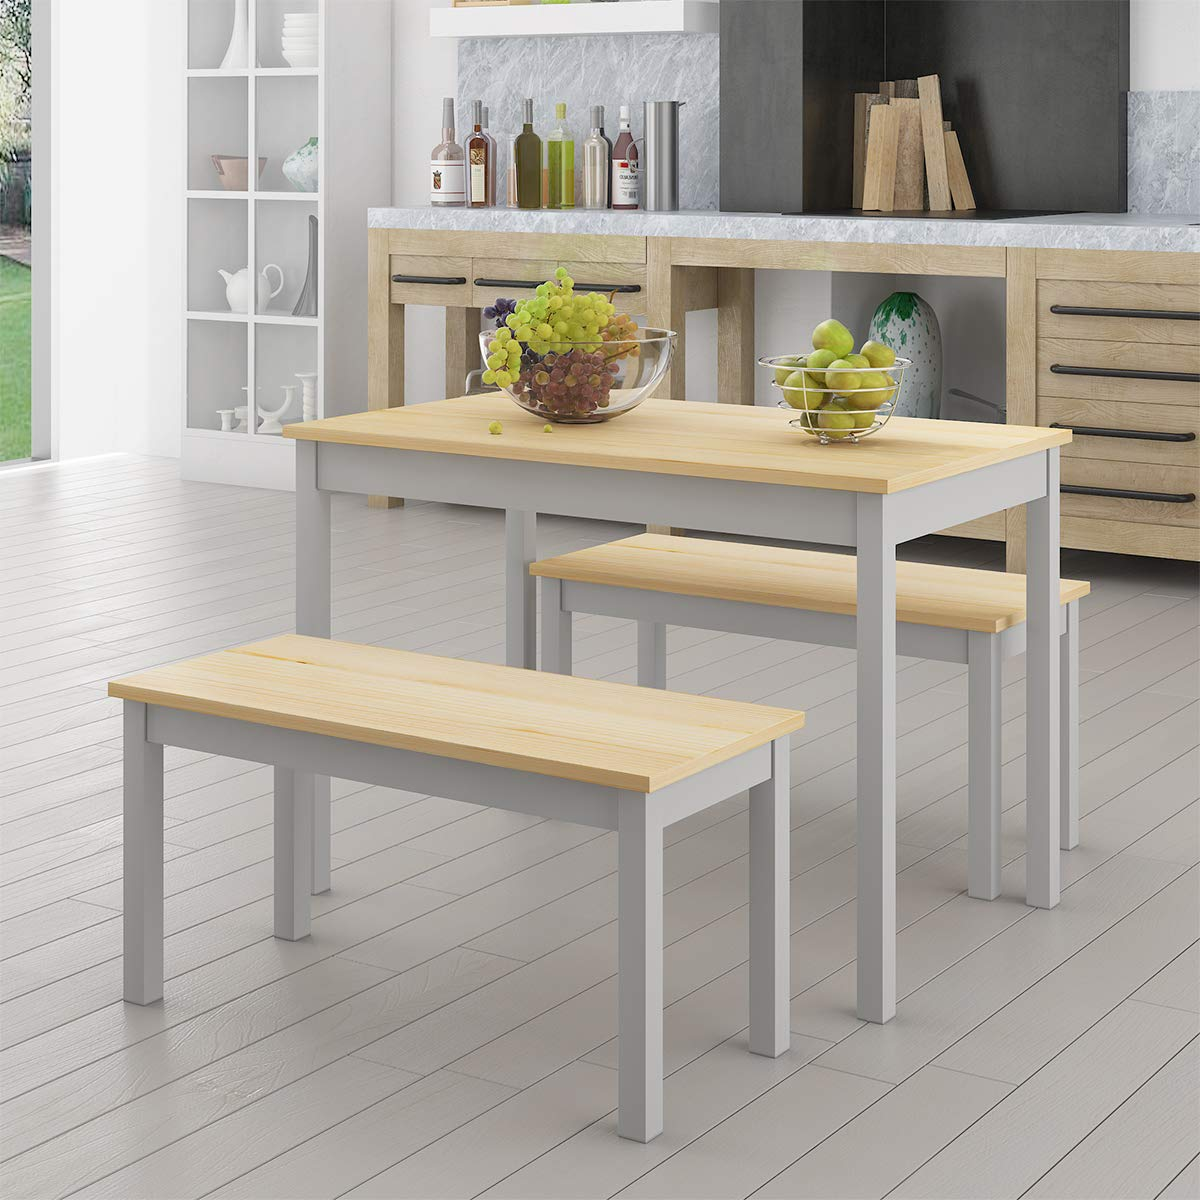 Panana Dining Table And Bench Set Wooden Dining Table And 2 Chairs Modern Kitchen Dining Room Furniture Pine Wood Grey Table And 2 Benches Buy Online In Papua New Guinea At Desertcart